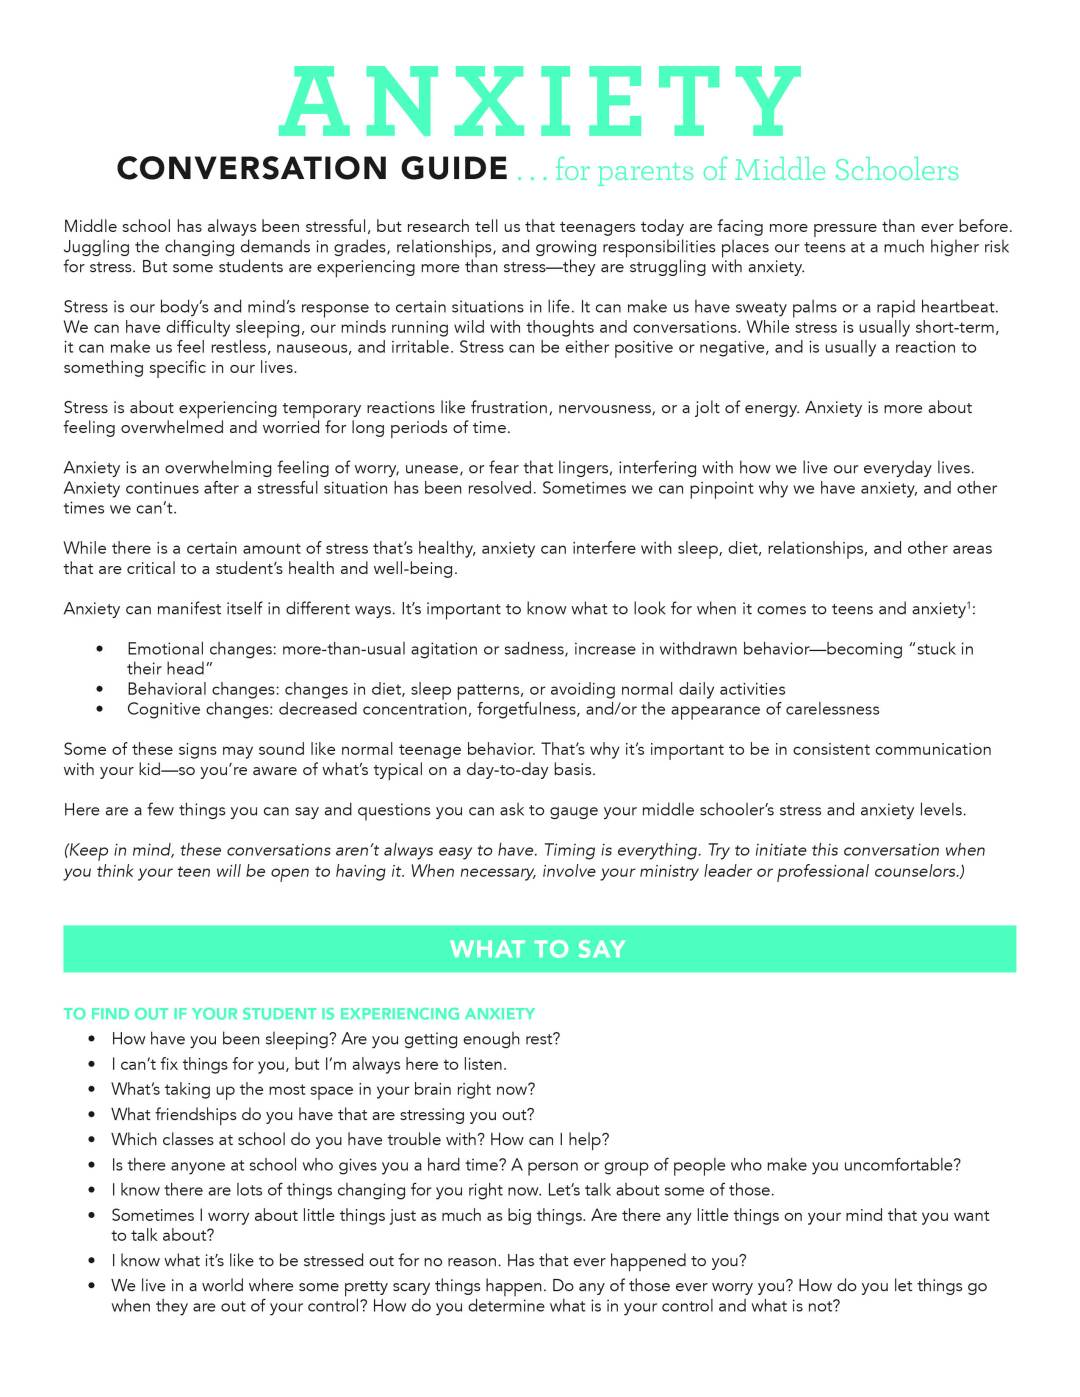 Anxiety Conversation Guides (for MS & HS) - Parent Cue